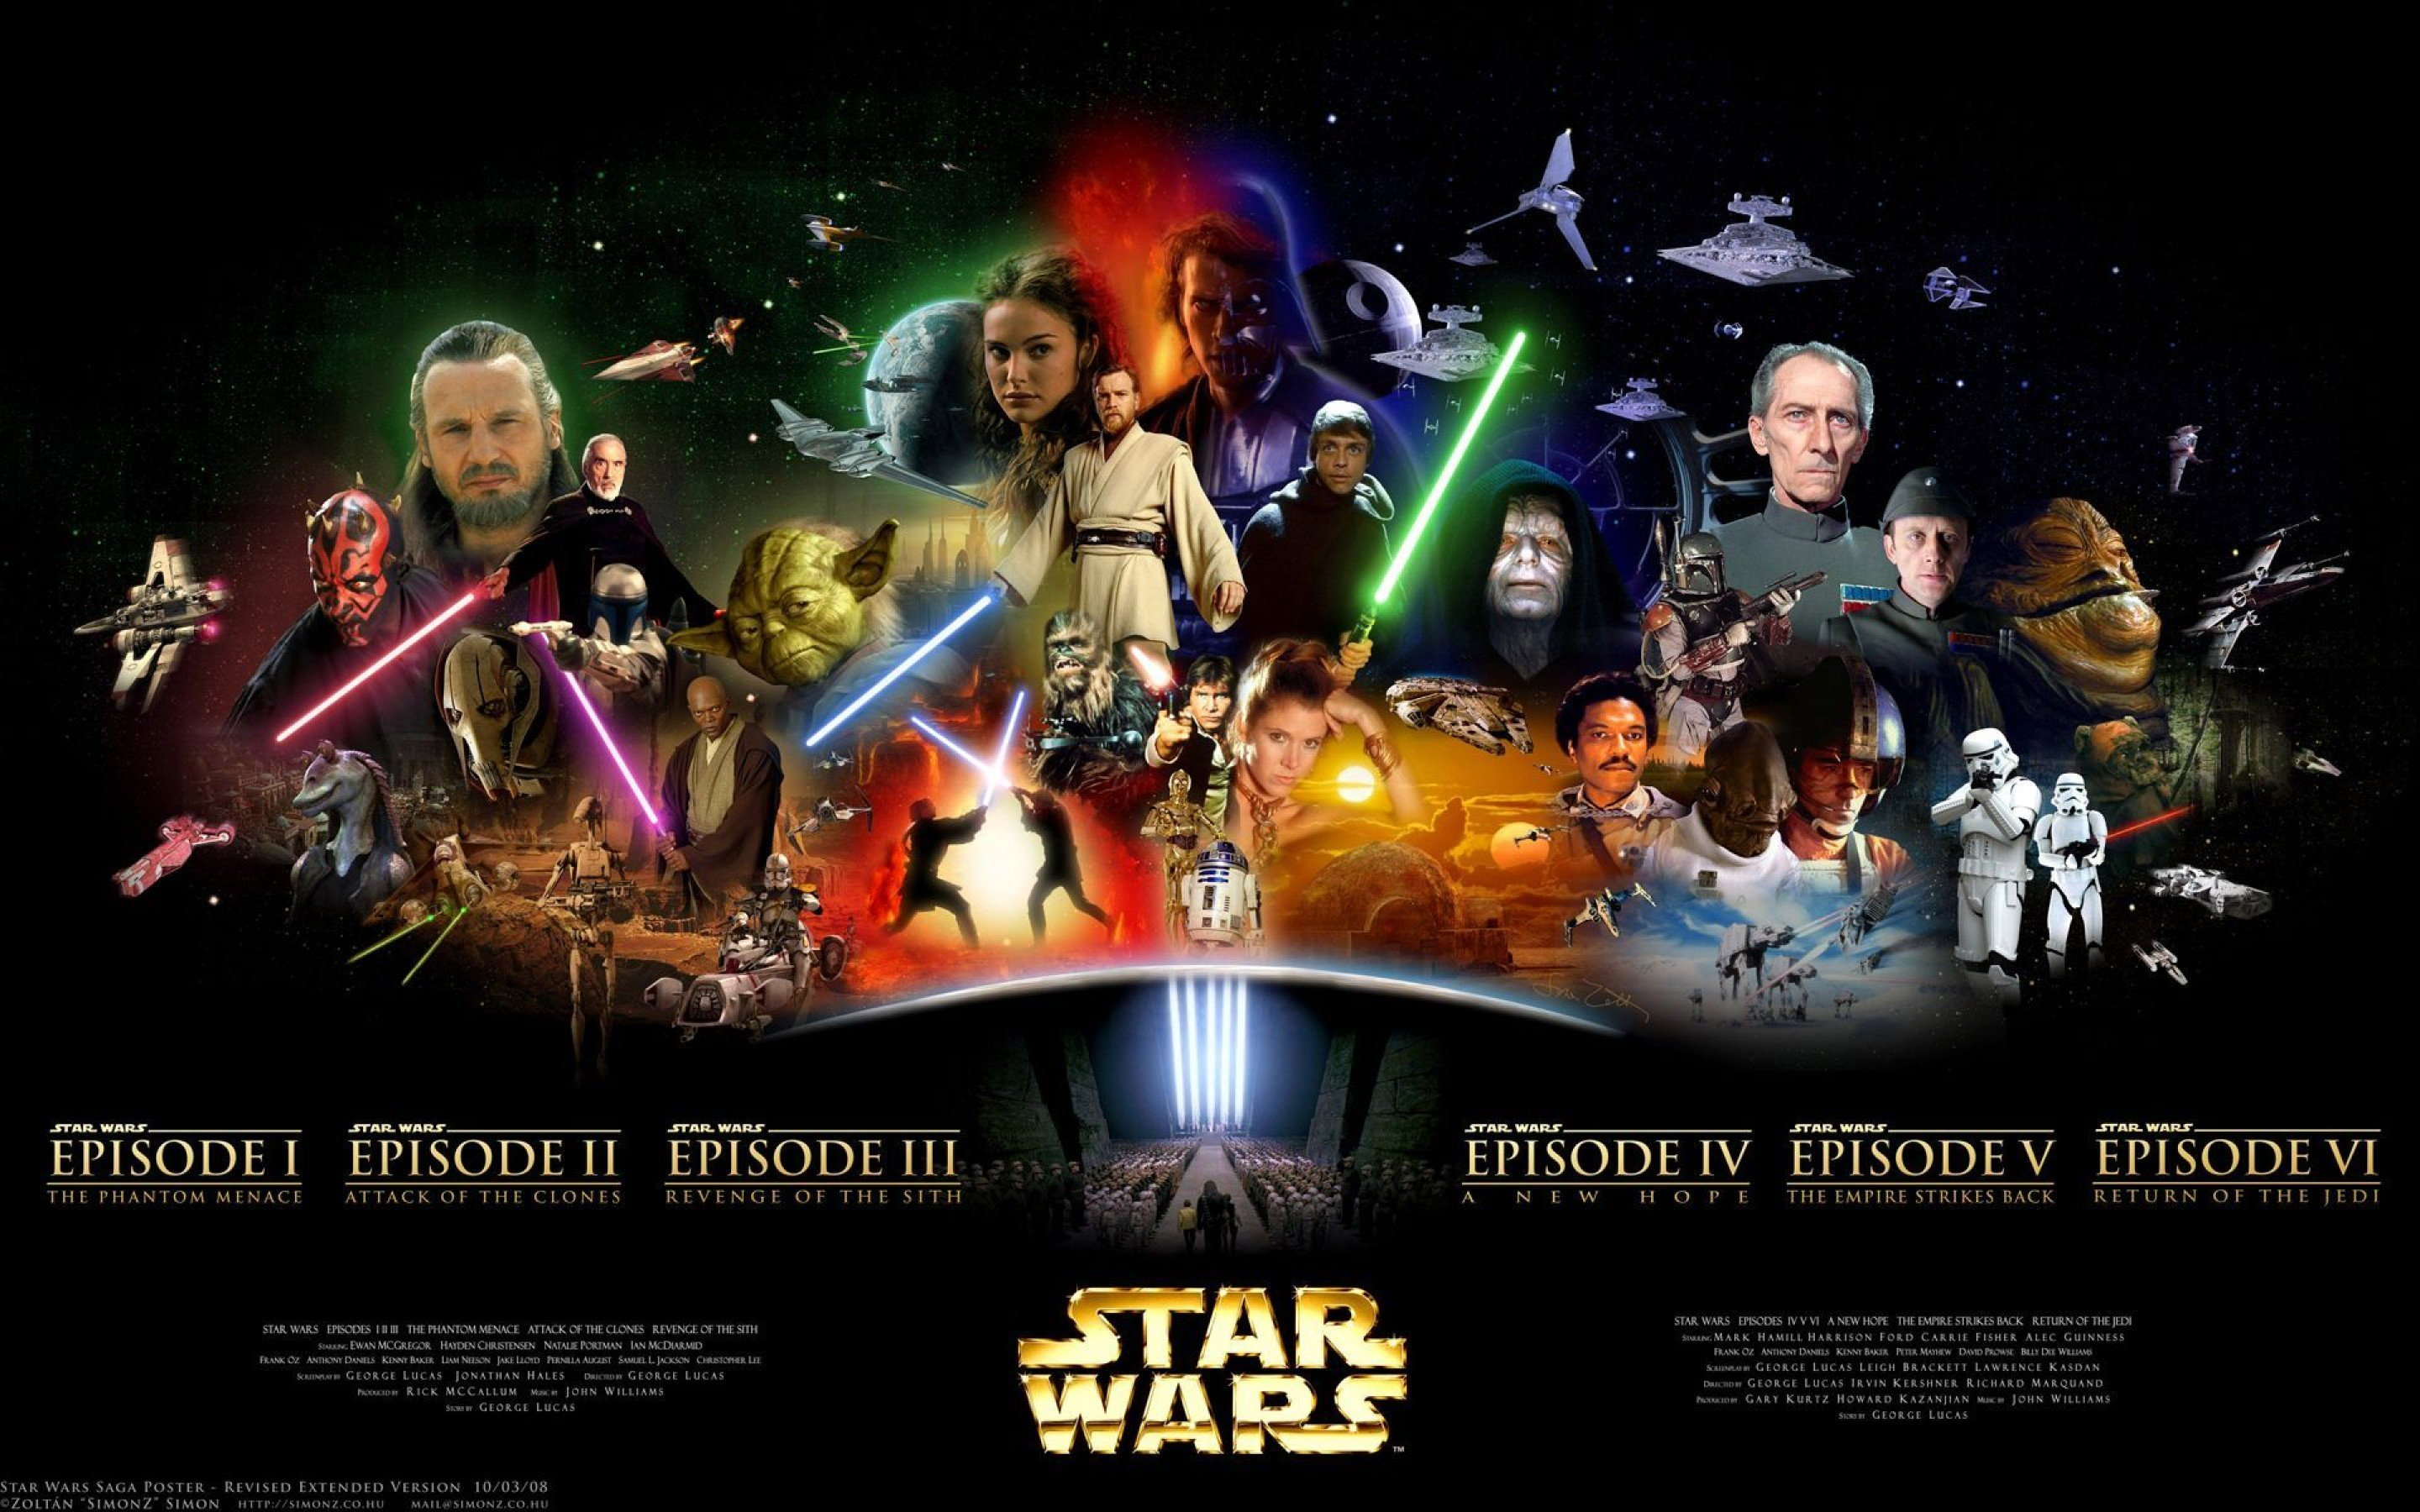 Free Download Star Wars Wallpaper Widescreen 9 2880x1800 For Your Desktop Mobile Tablet Explore 49 Star Wars Widescreen Wallpapers Computer Star Wars Movie Wallpaper High Resolution Star Wars Wallpaper